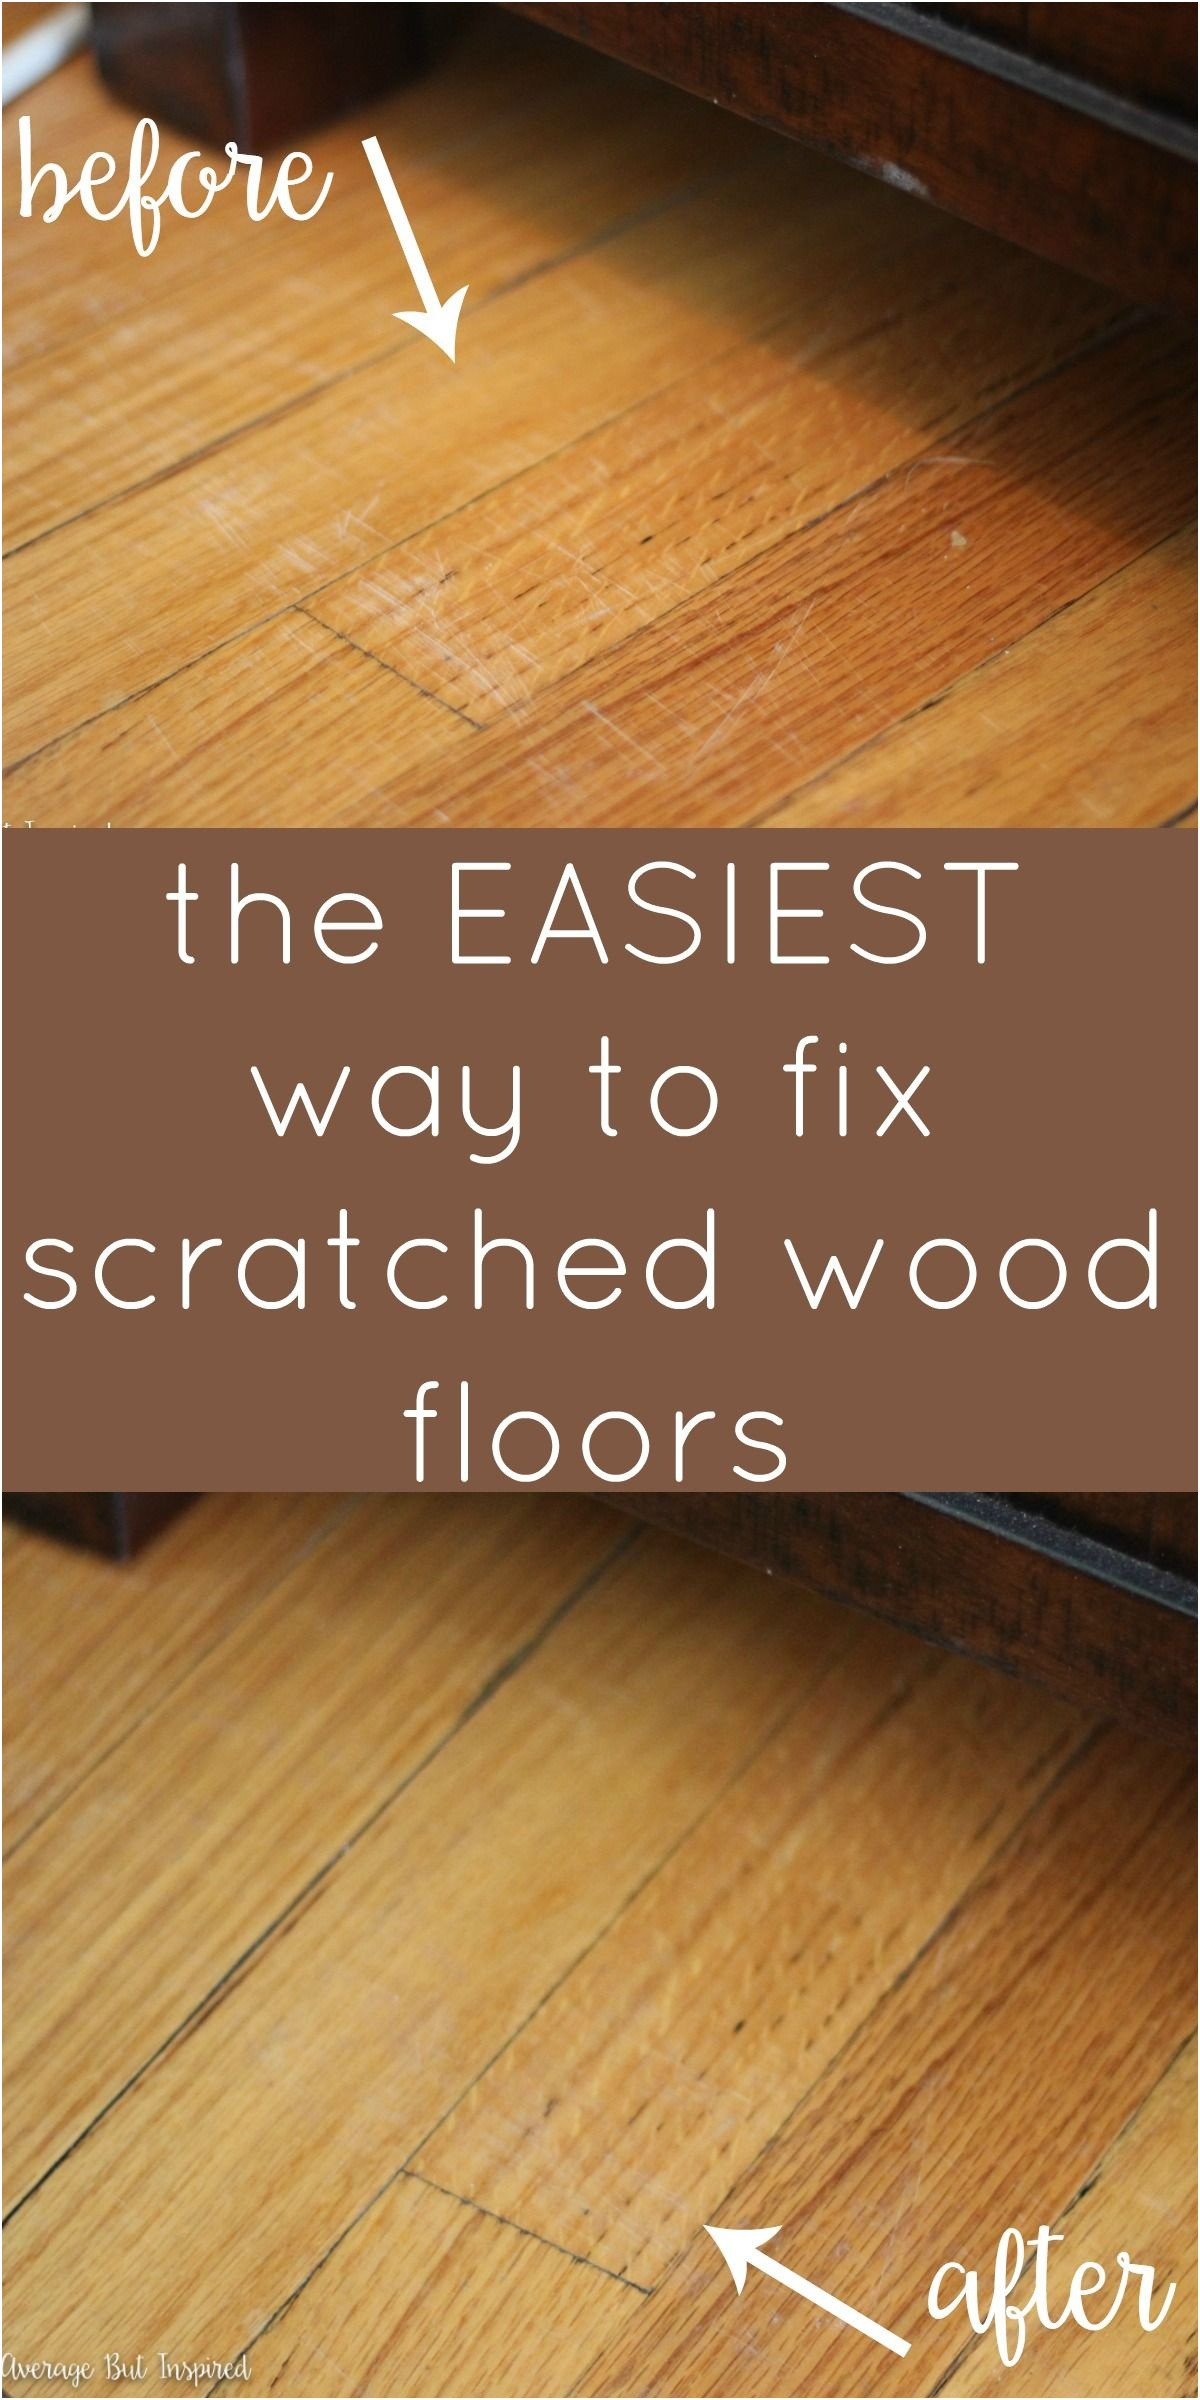 avg cost of hardwood flooring installed of average cost of new flooring flooring design within average cost of new flooring best of how to fix scratched hardwood floors in no time